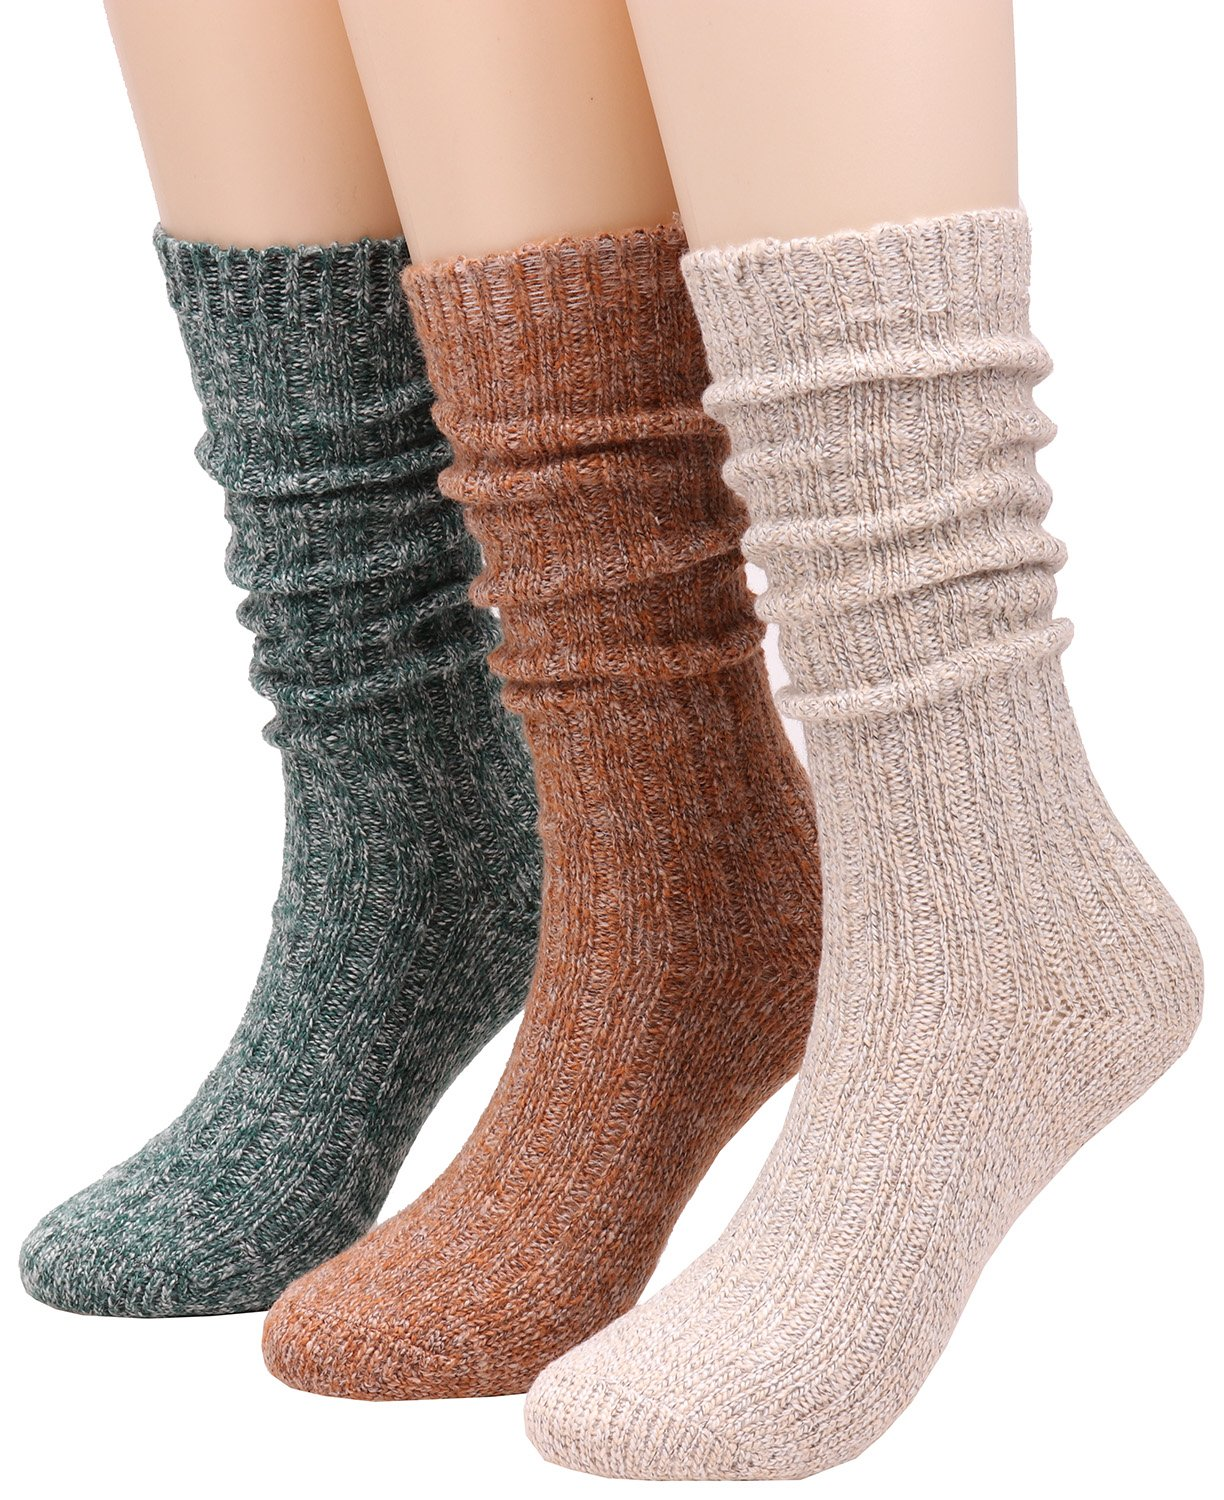 3 Pairs Women Warm Mid Calf Wool Knit Cable Knee High Boot Crew Socks,Size 5-10 W56 (soild color)